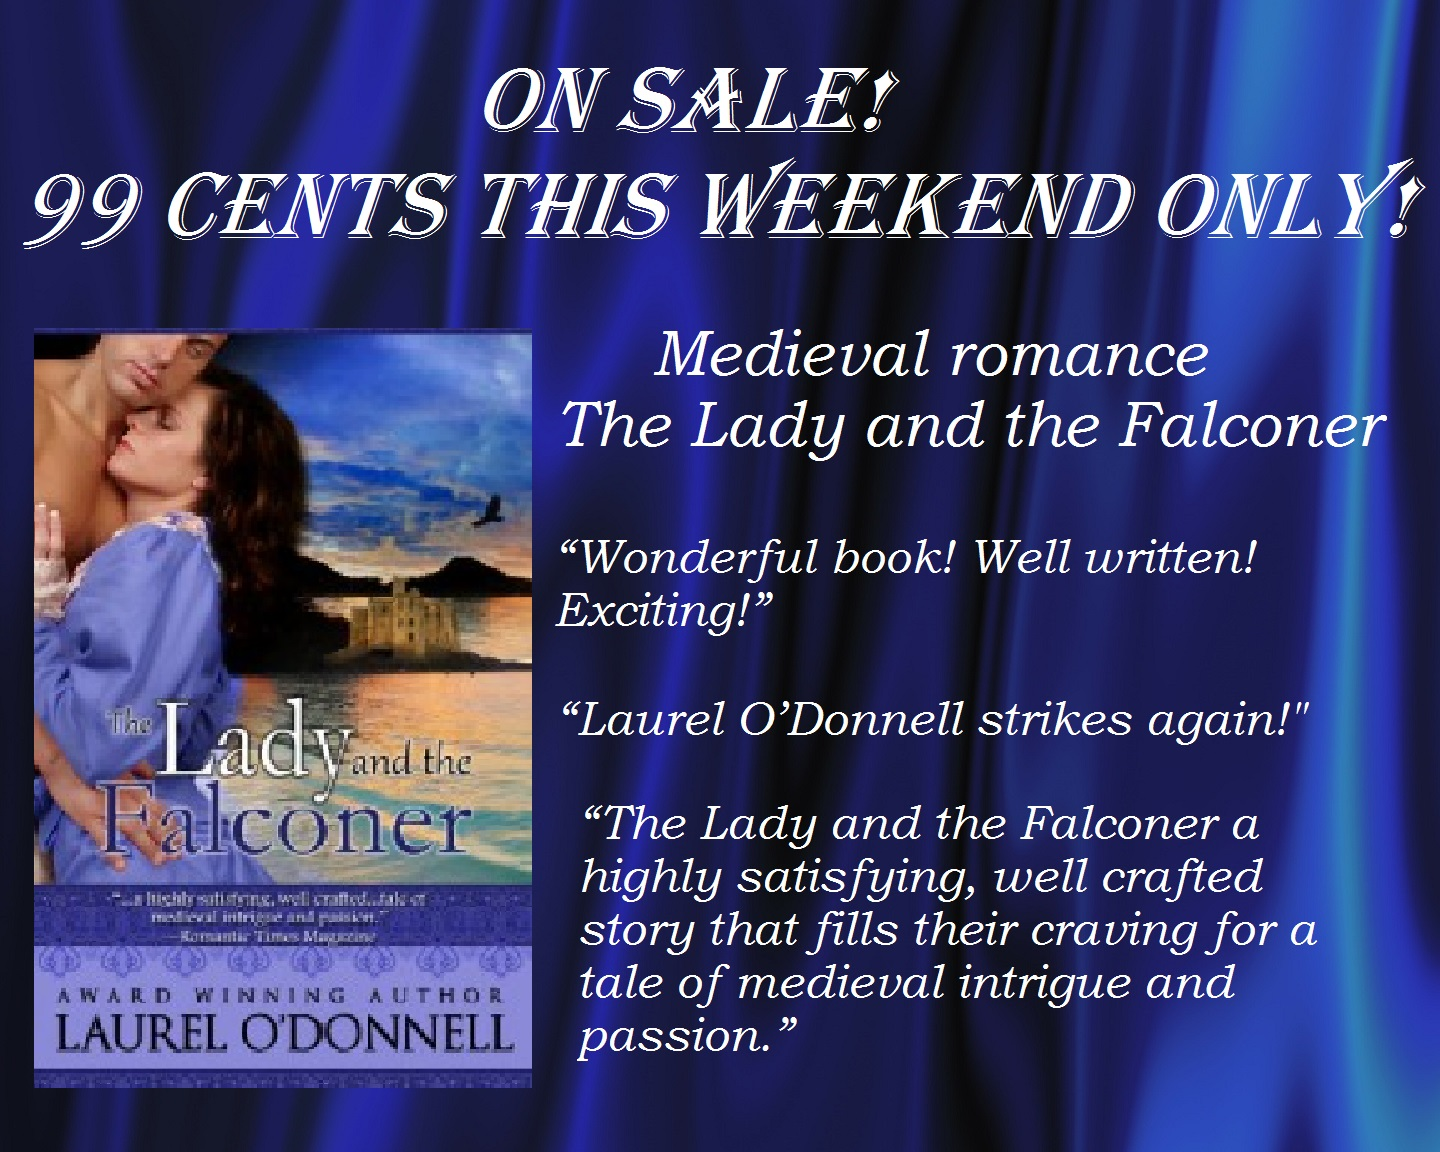 lady-and-the-falconer-sale